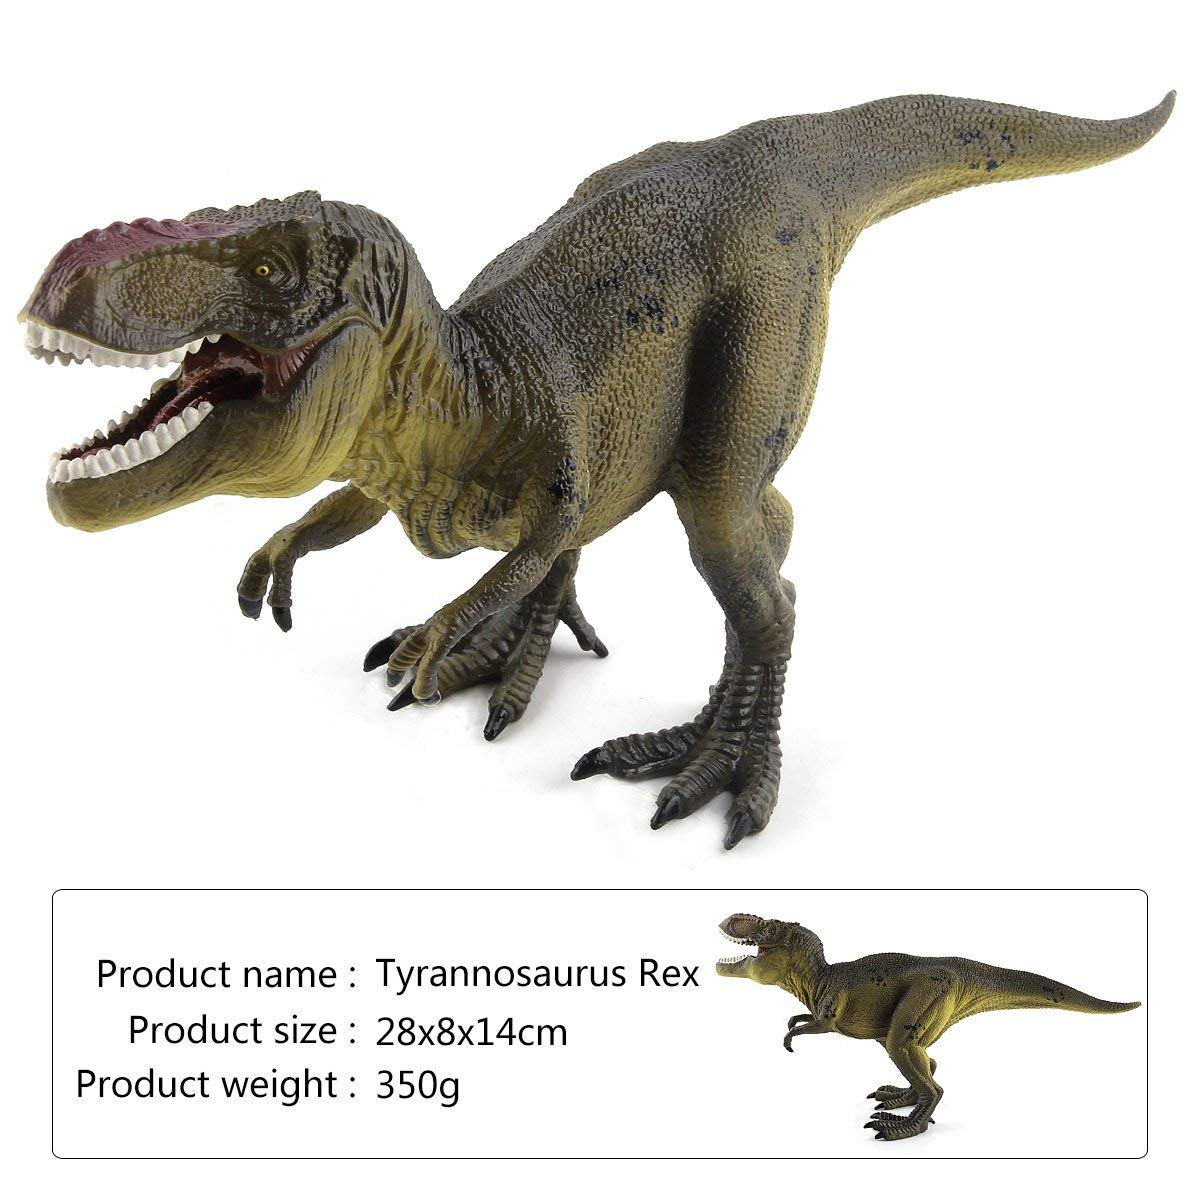 "T-Rex Dinosaur Figures 11"" Large Tyrannosaurus Rex Realistic Plastic Detailed Dinosaur Toys for Kids"